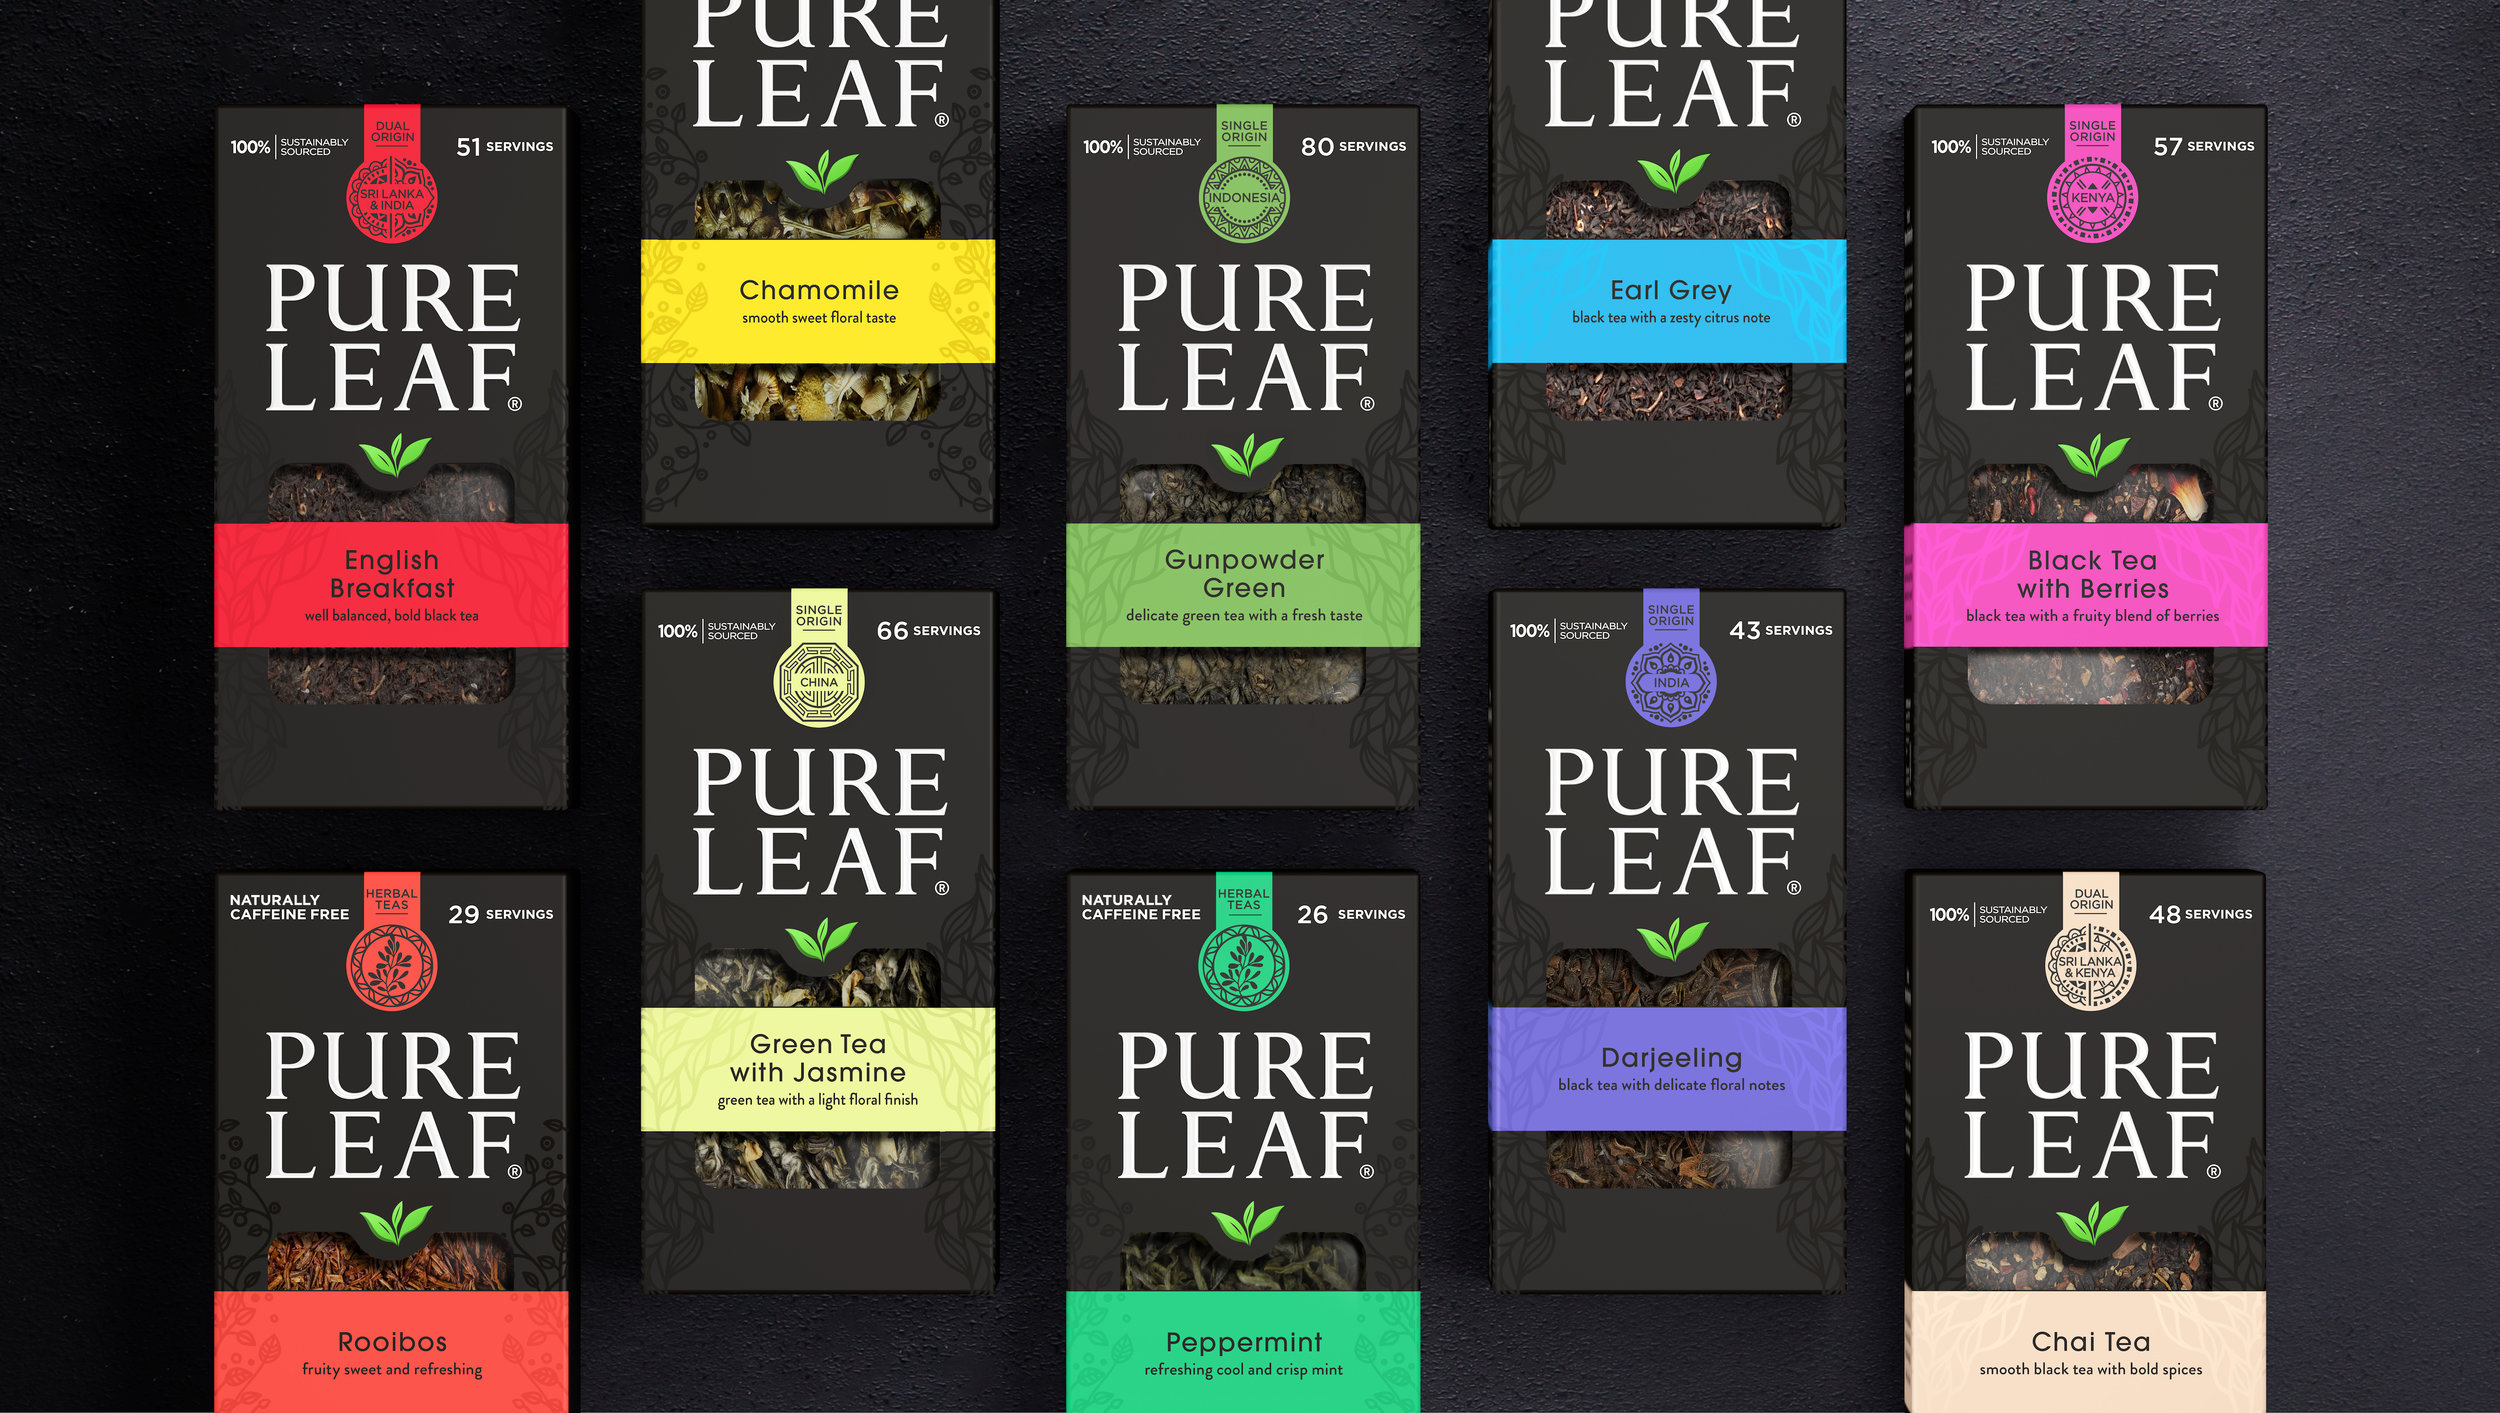 PB Creative - Pure Leaf Tea re-brand2.jpg